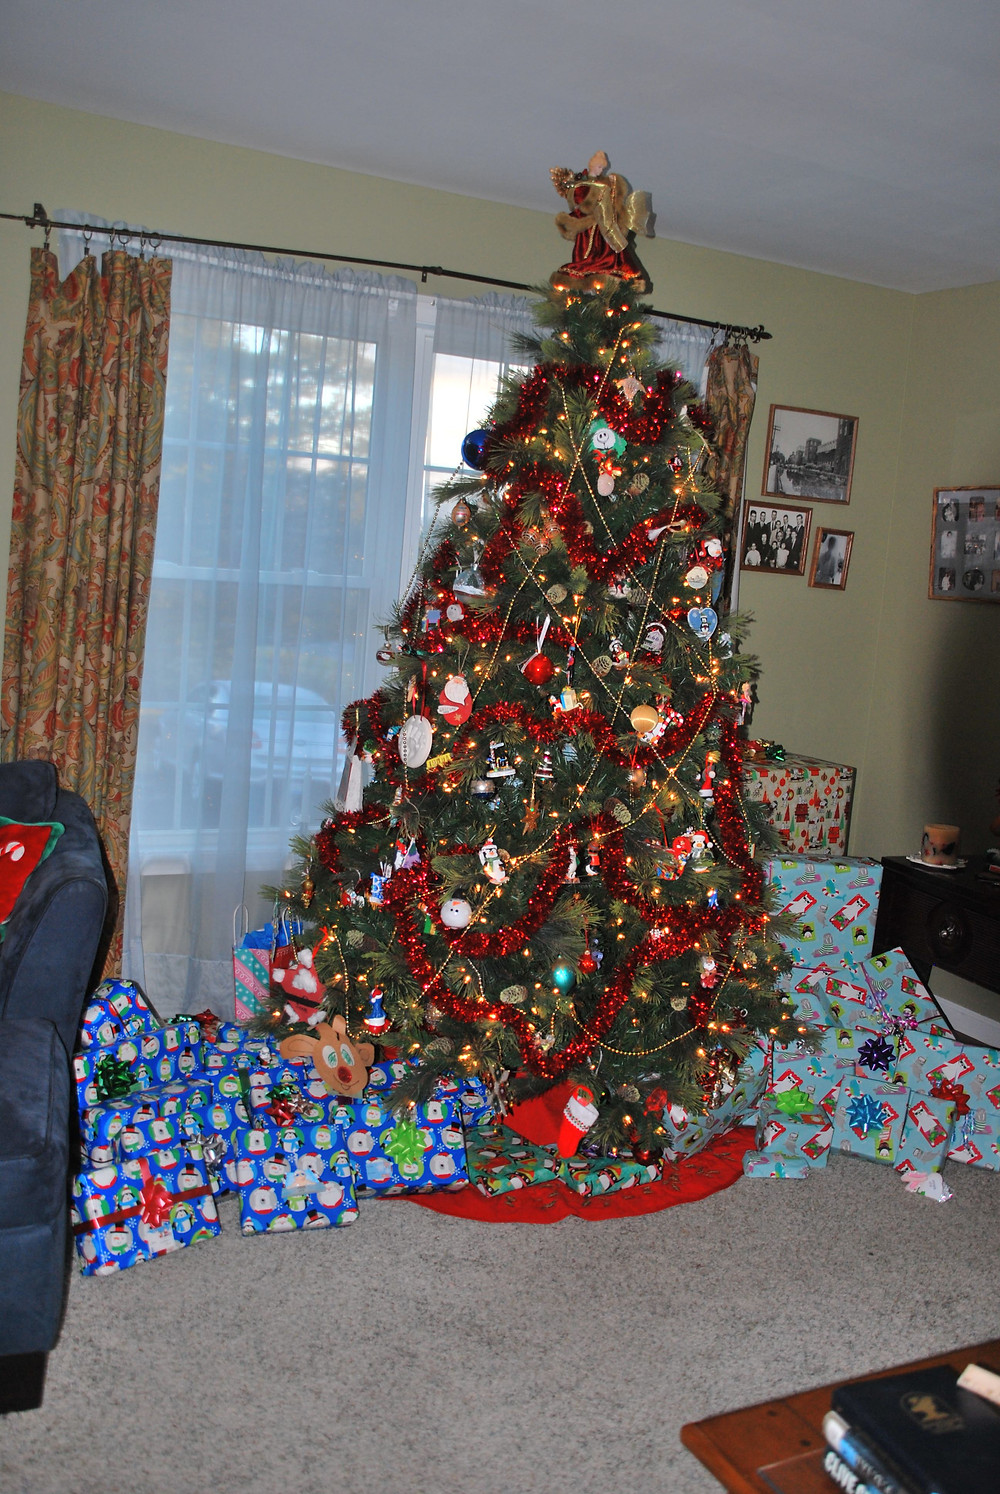 Christmas tree with a pile of presents wrapped in blue and a pile of presents wrapped in aqua